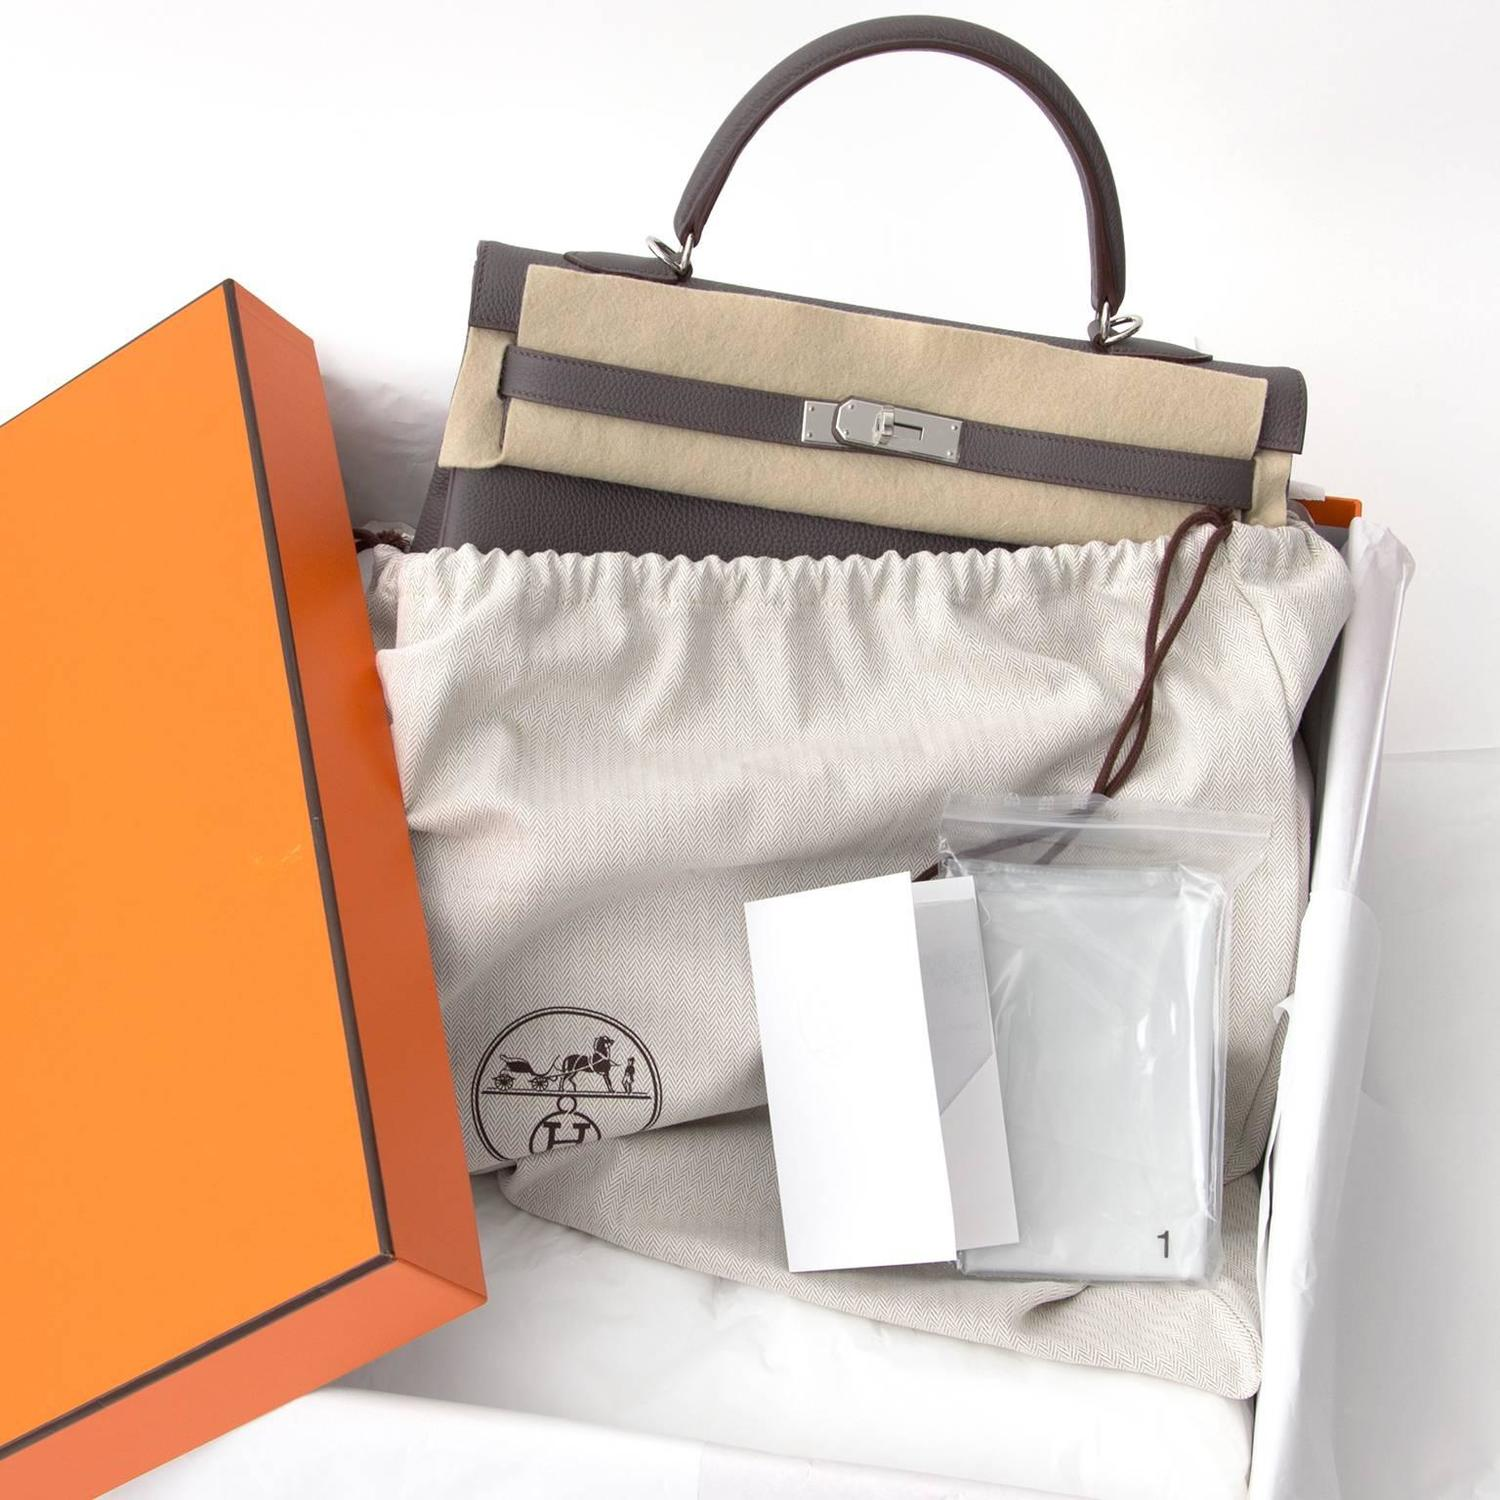 9b46f08527 instant luxe neuf sac a main Hermes Kelly Retroune 35 Togo Etaine PHW  Anvers, Belgique real real designer Brand New Hermes Kelly Retroune 35 Togo  Etaine PHW ...